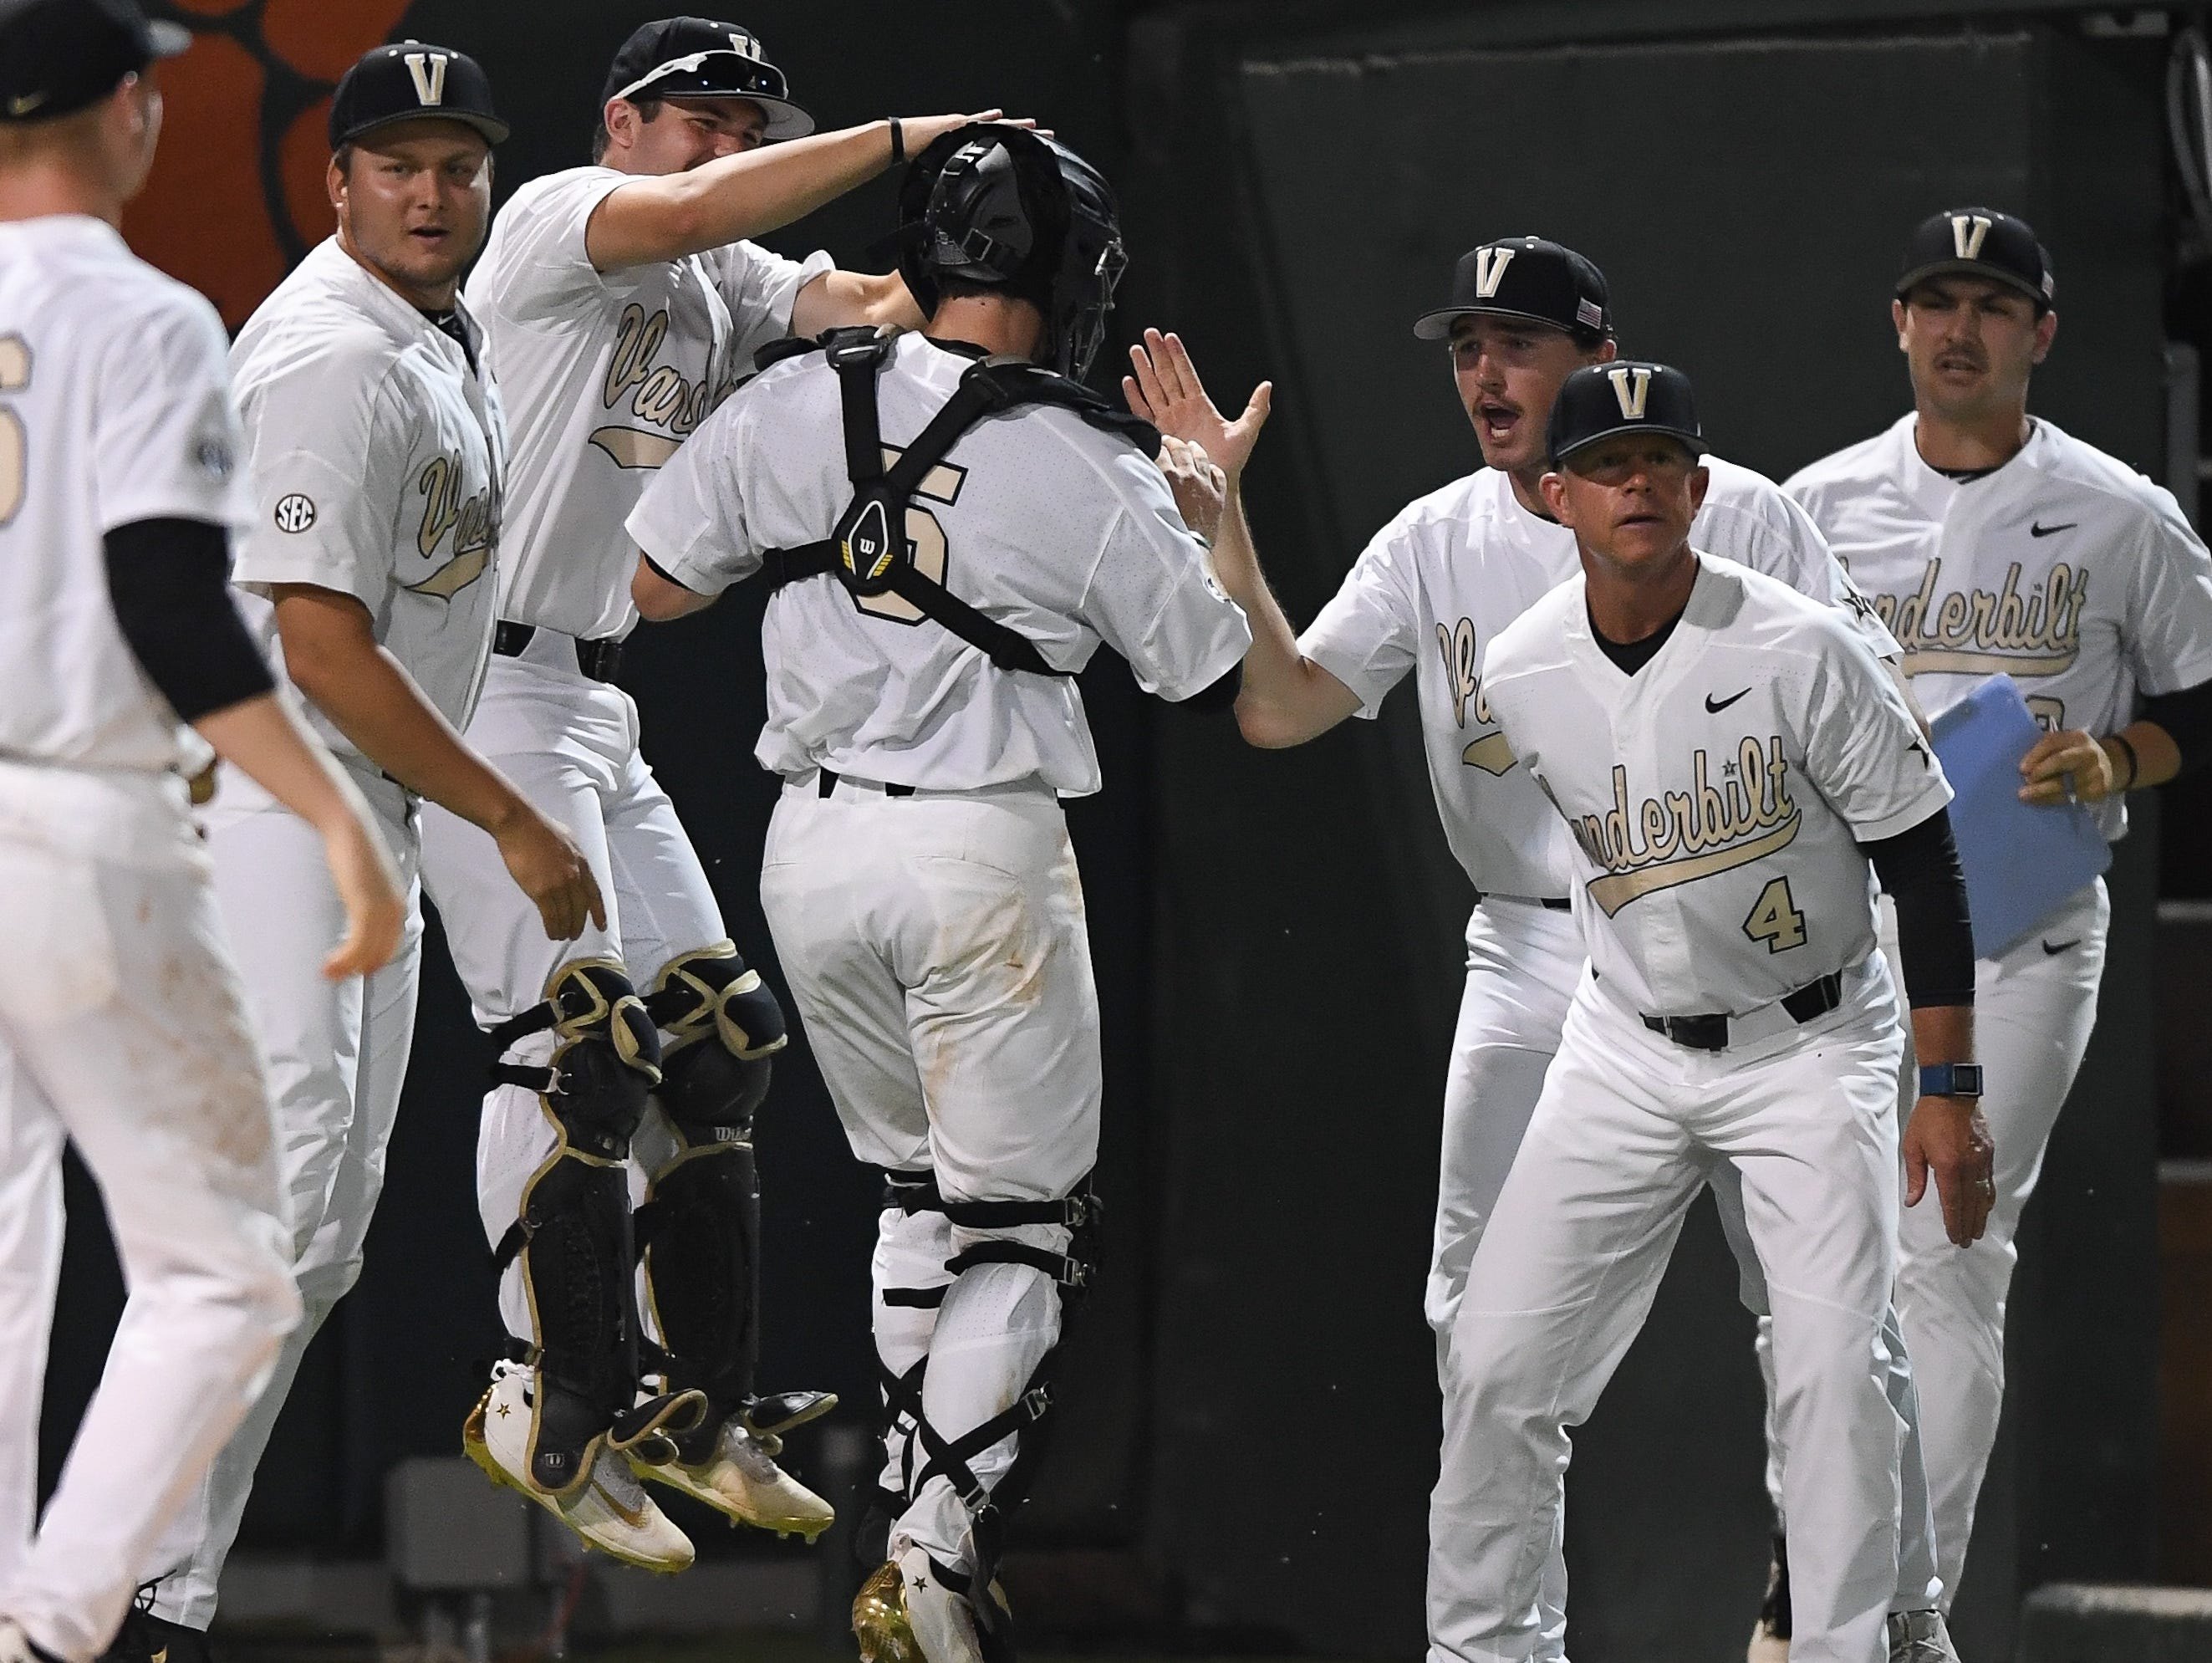 Vanderbilt catcher Jason Delay, center, celebrates an out at home plate with teammates and coaches during an NCAA Regional game versus host Clemson Sunday night.